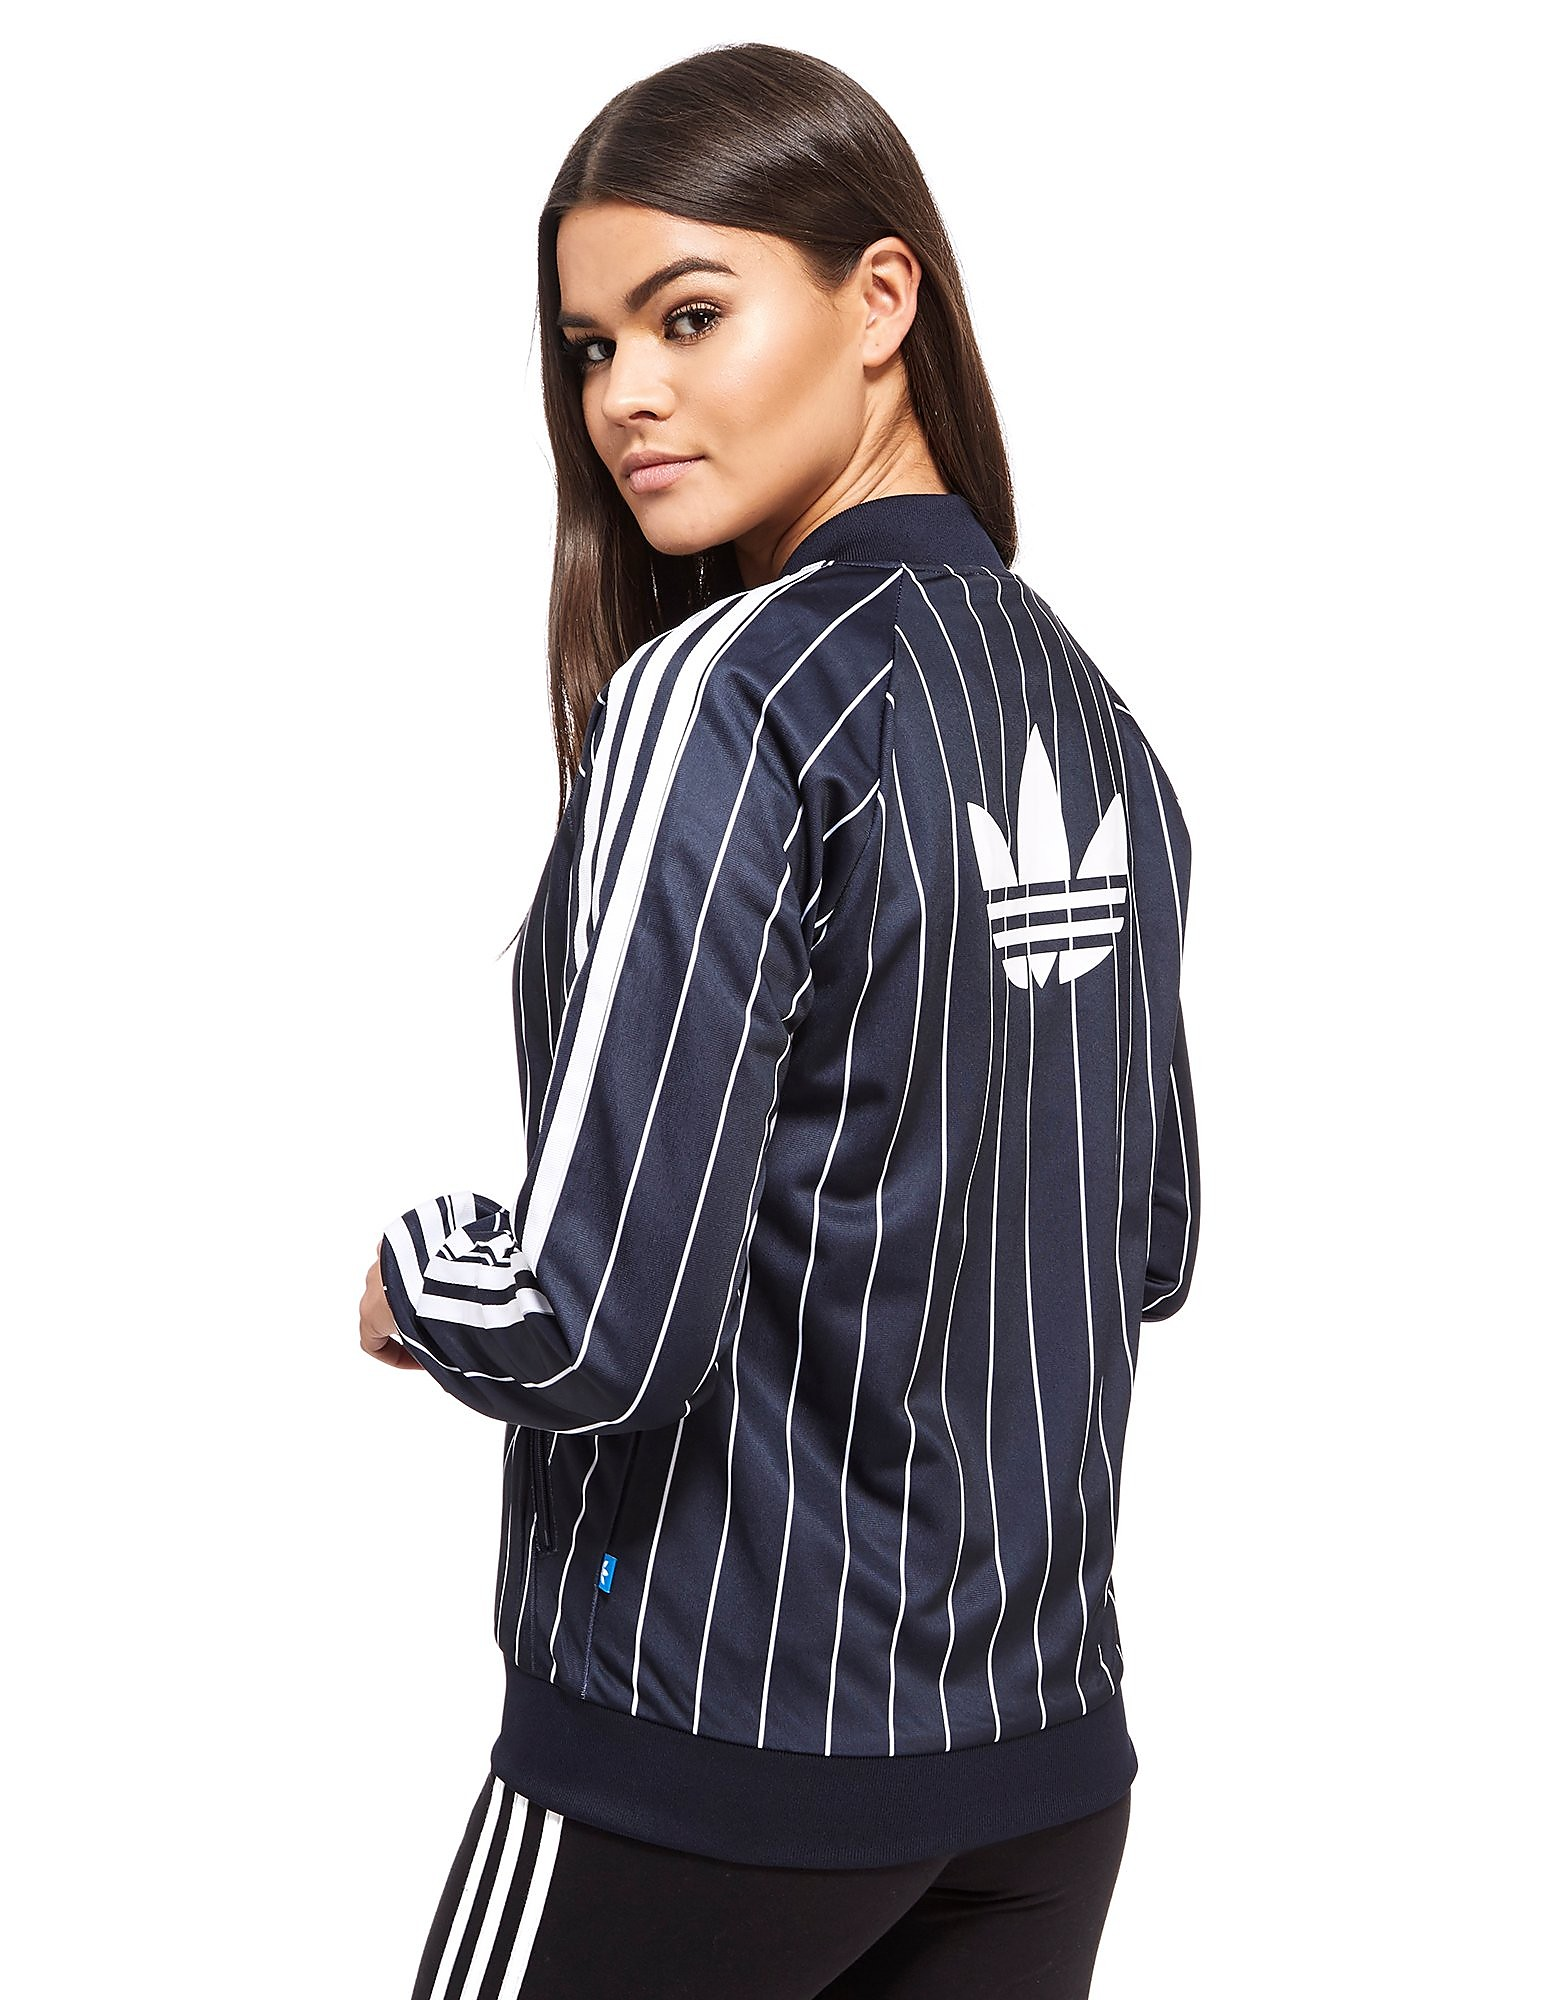 adidas Originals Tennis Superstar Track Top